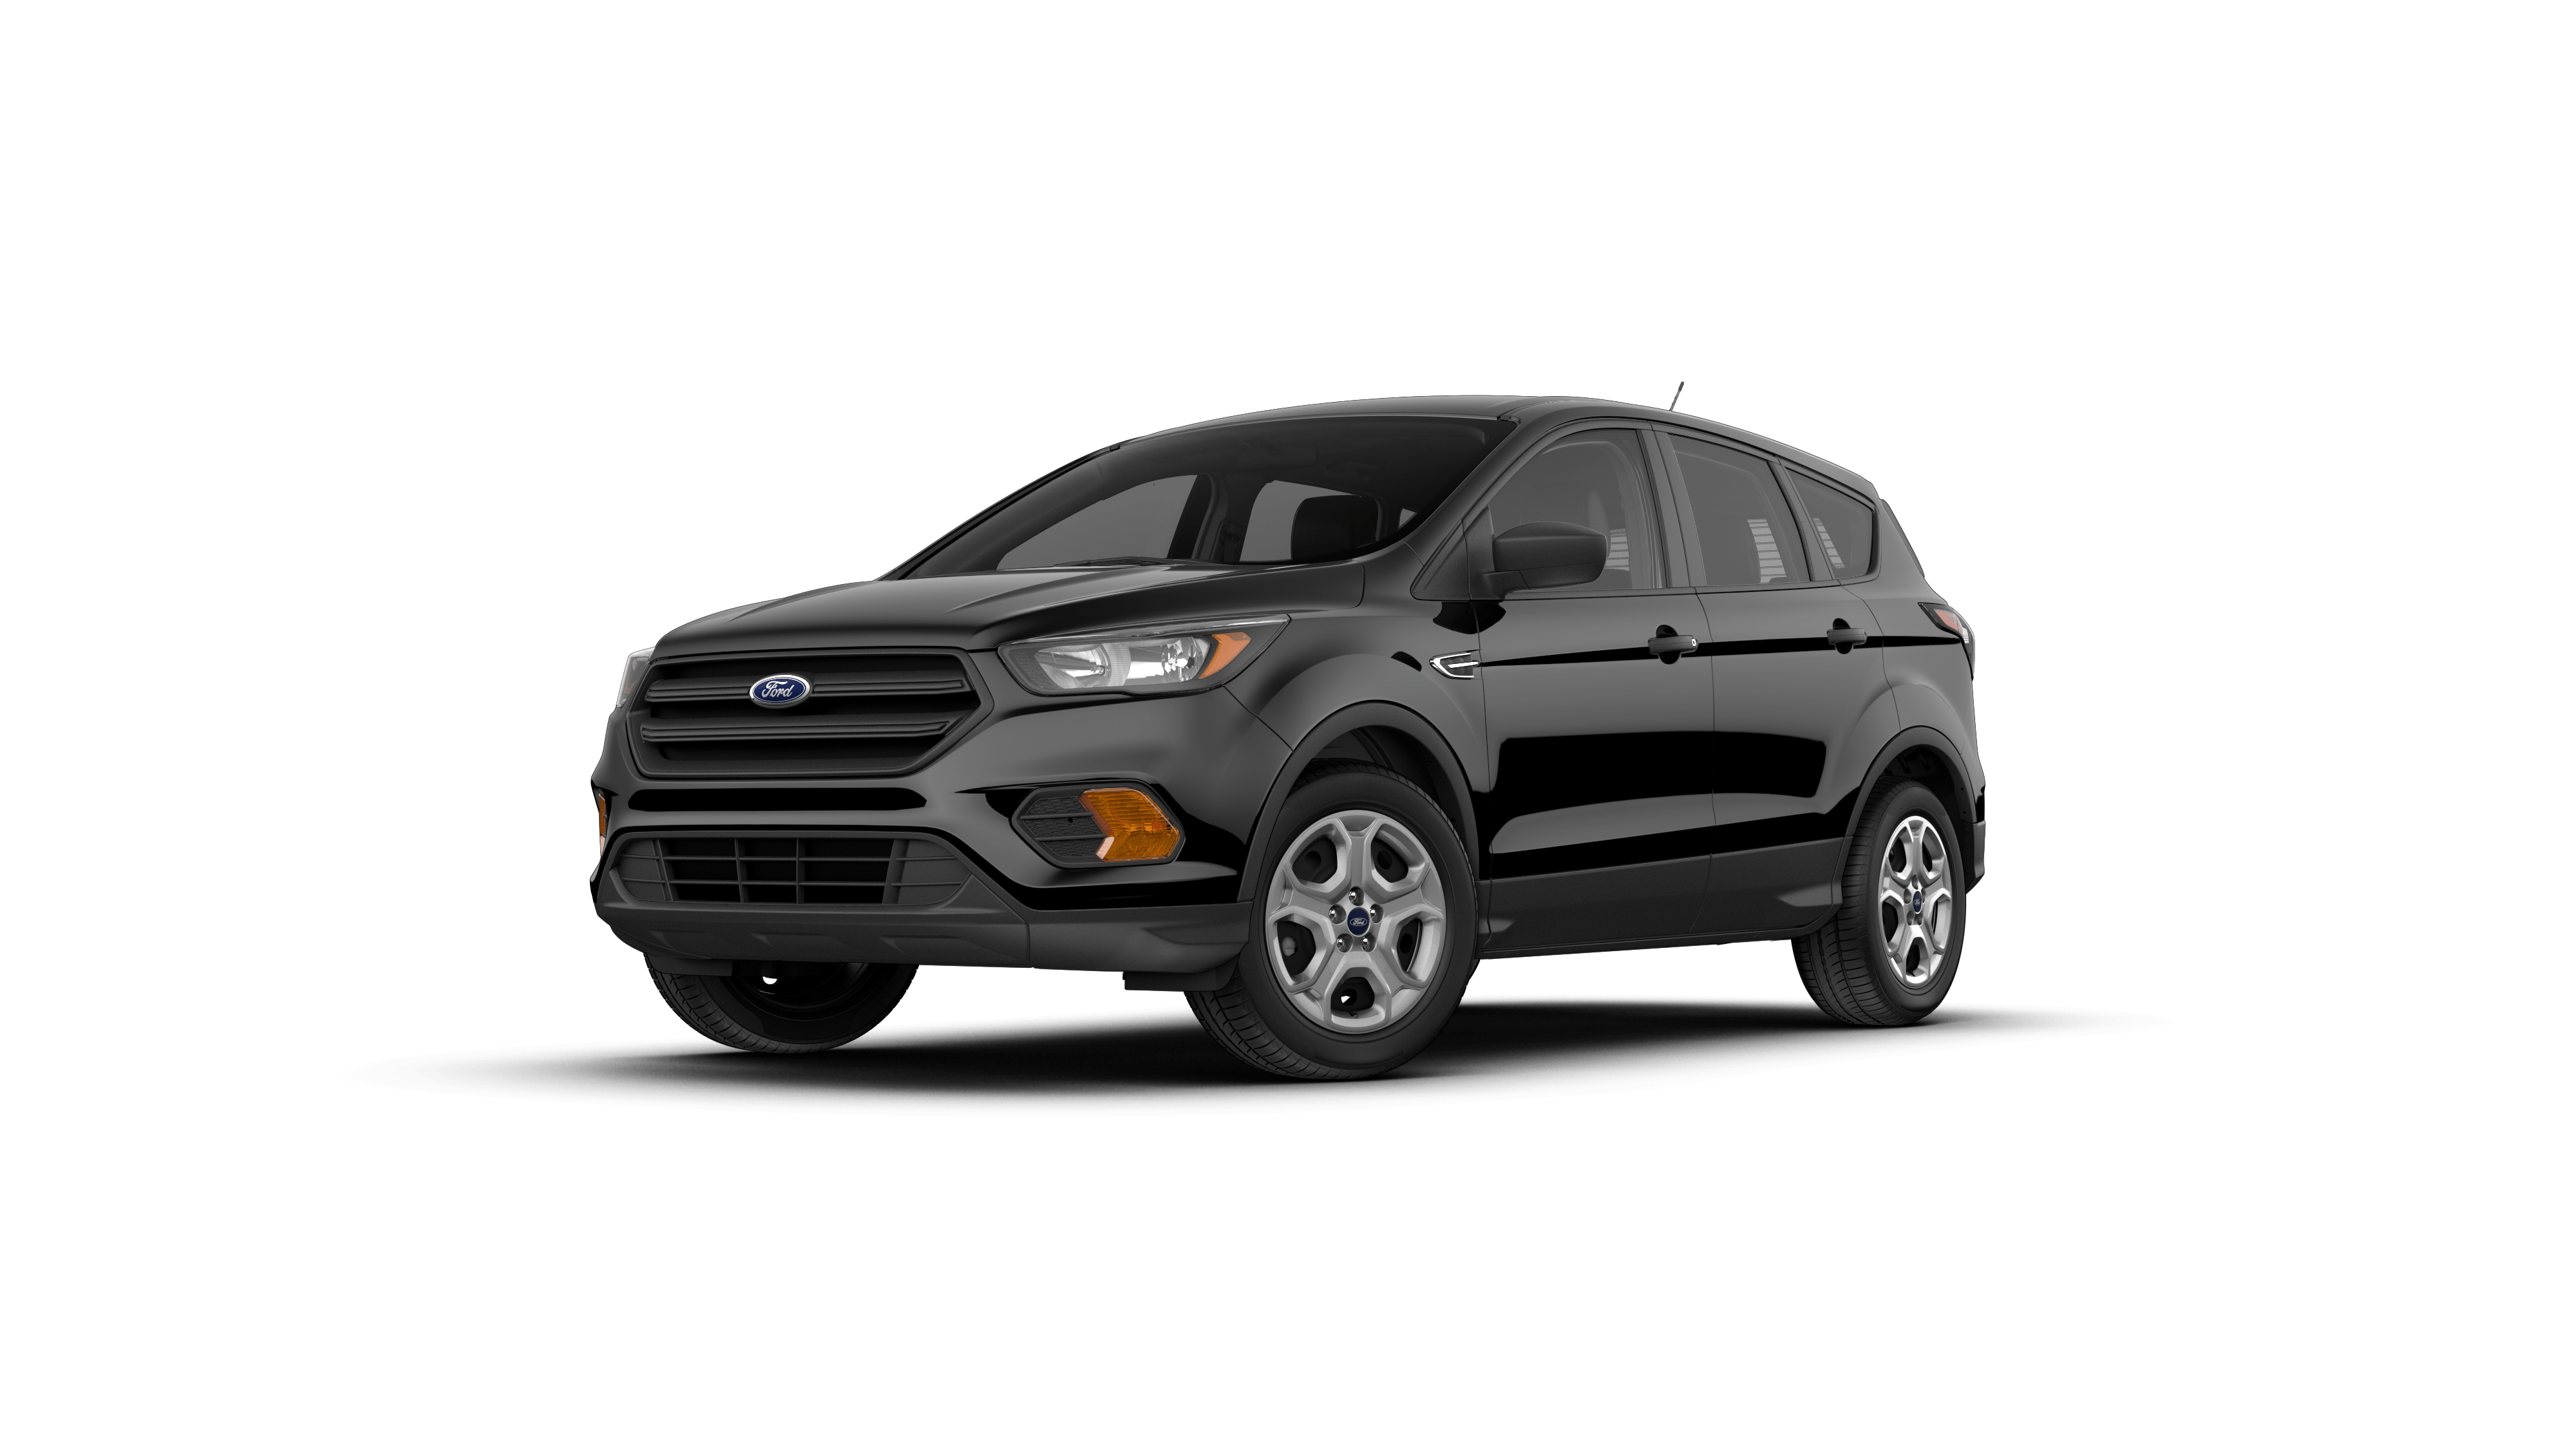 Horizon Ford is a Ford dealer selling new and used cars in Tukwila WA